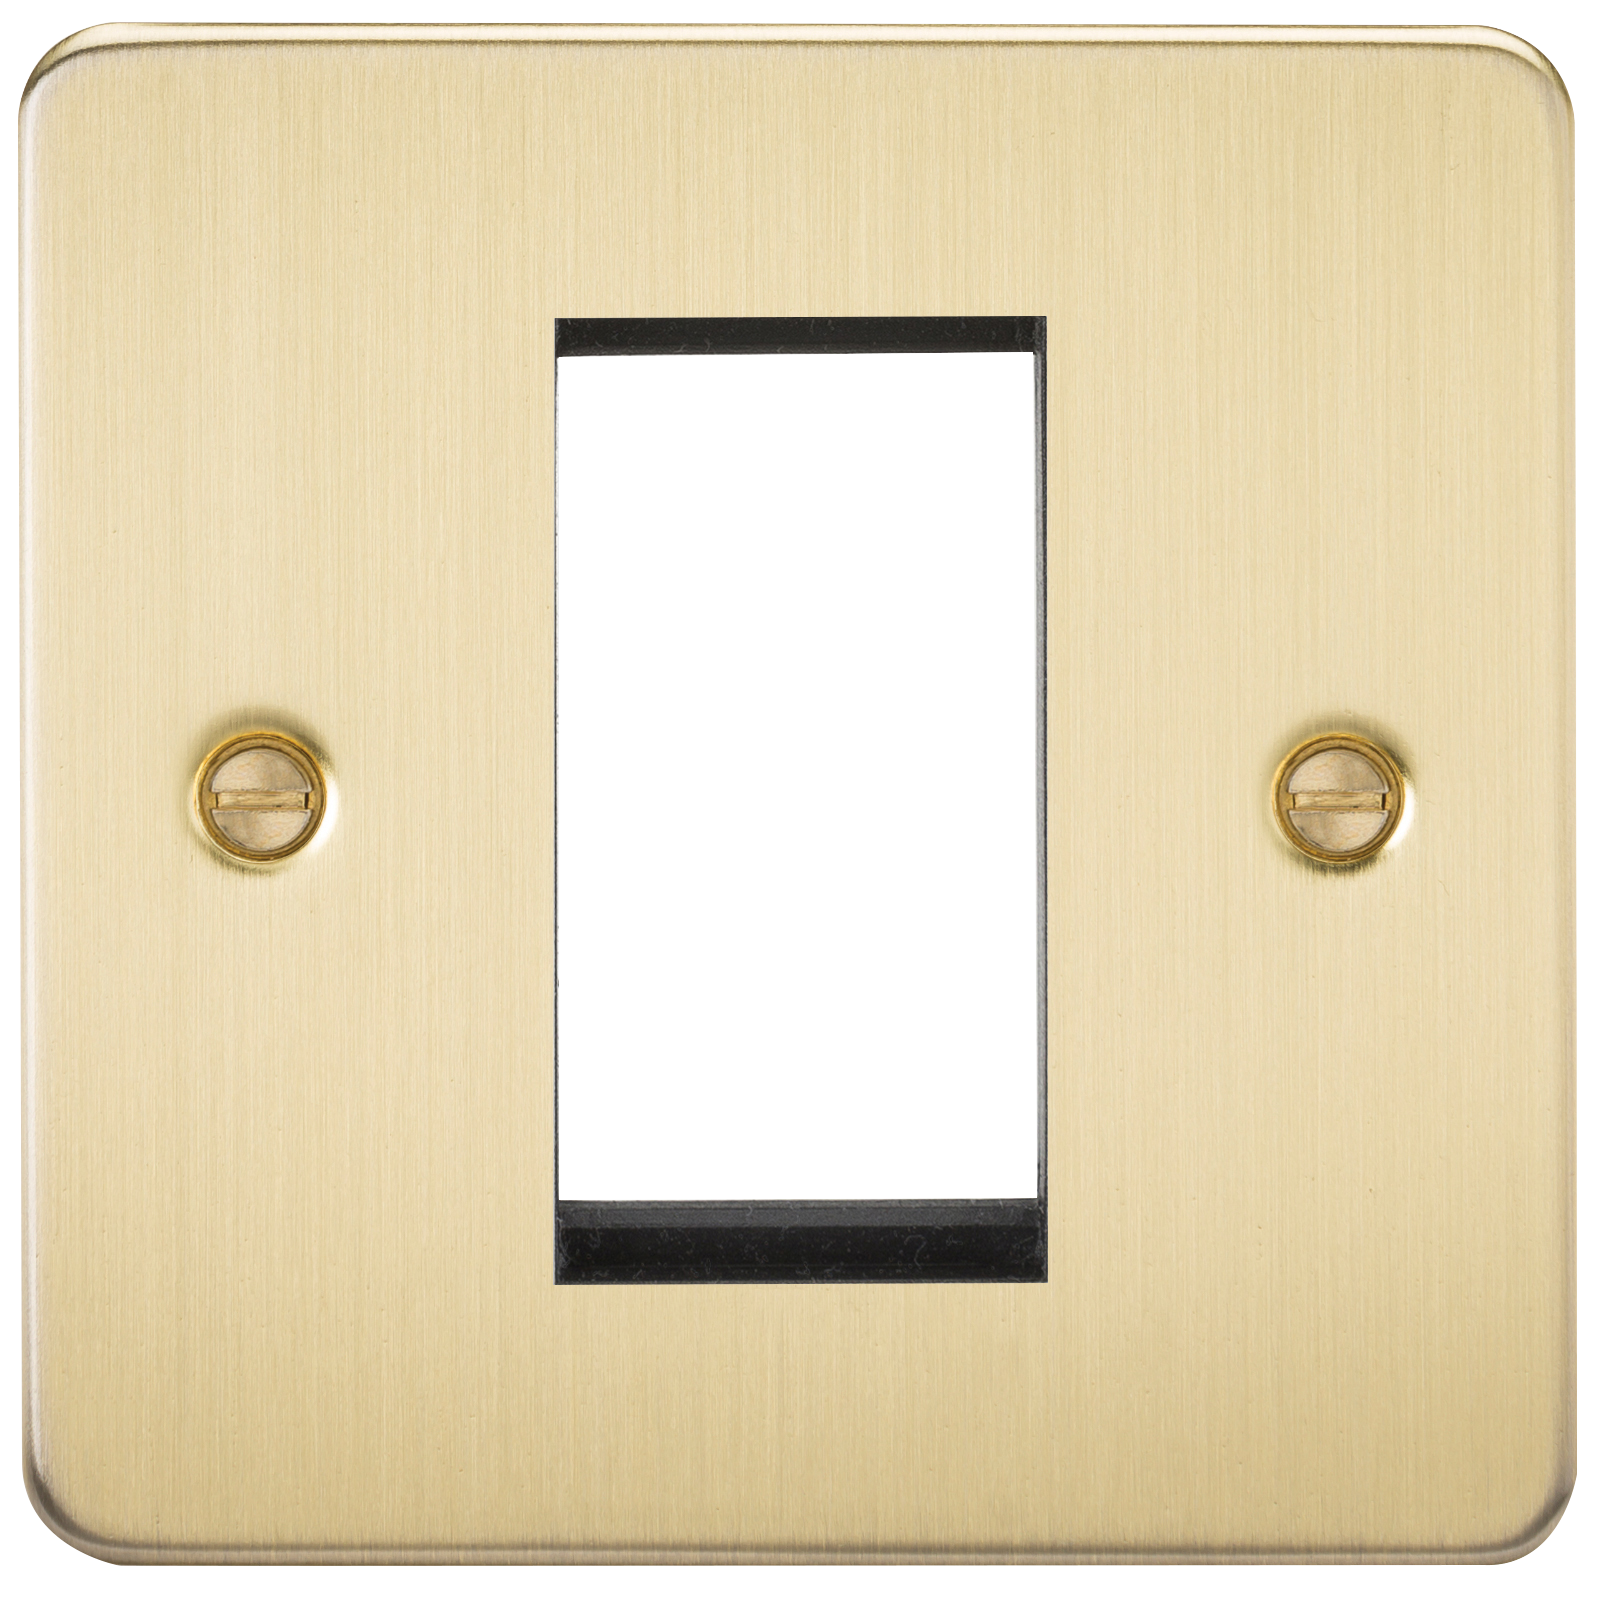 FLAT PLATE 1G MODULAR FACEPLATE - BRUSHED BRASS